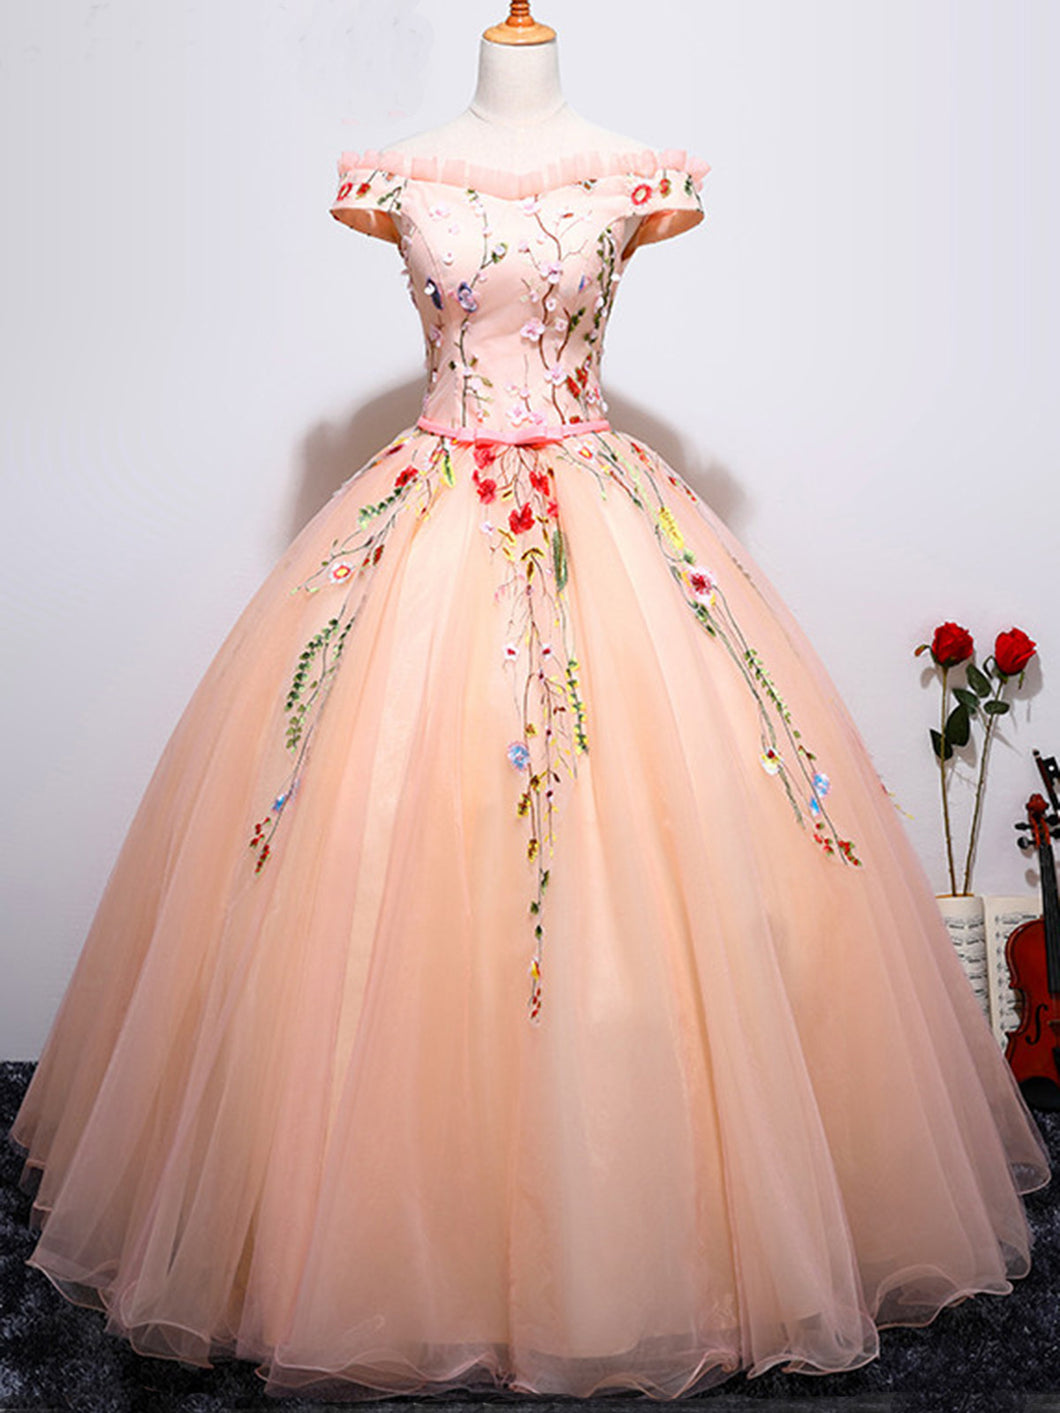 Beautiful Prom Dresses Ball Gown Off-the-shoulder Long Chic Prom Dress/Evening Dress JKL144